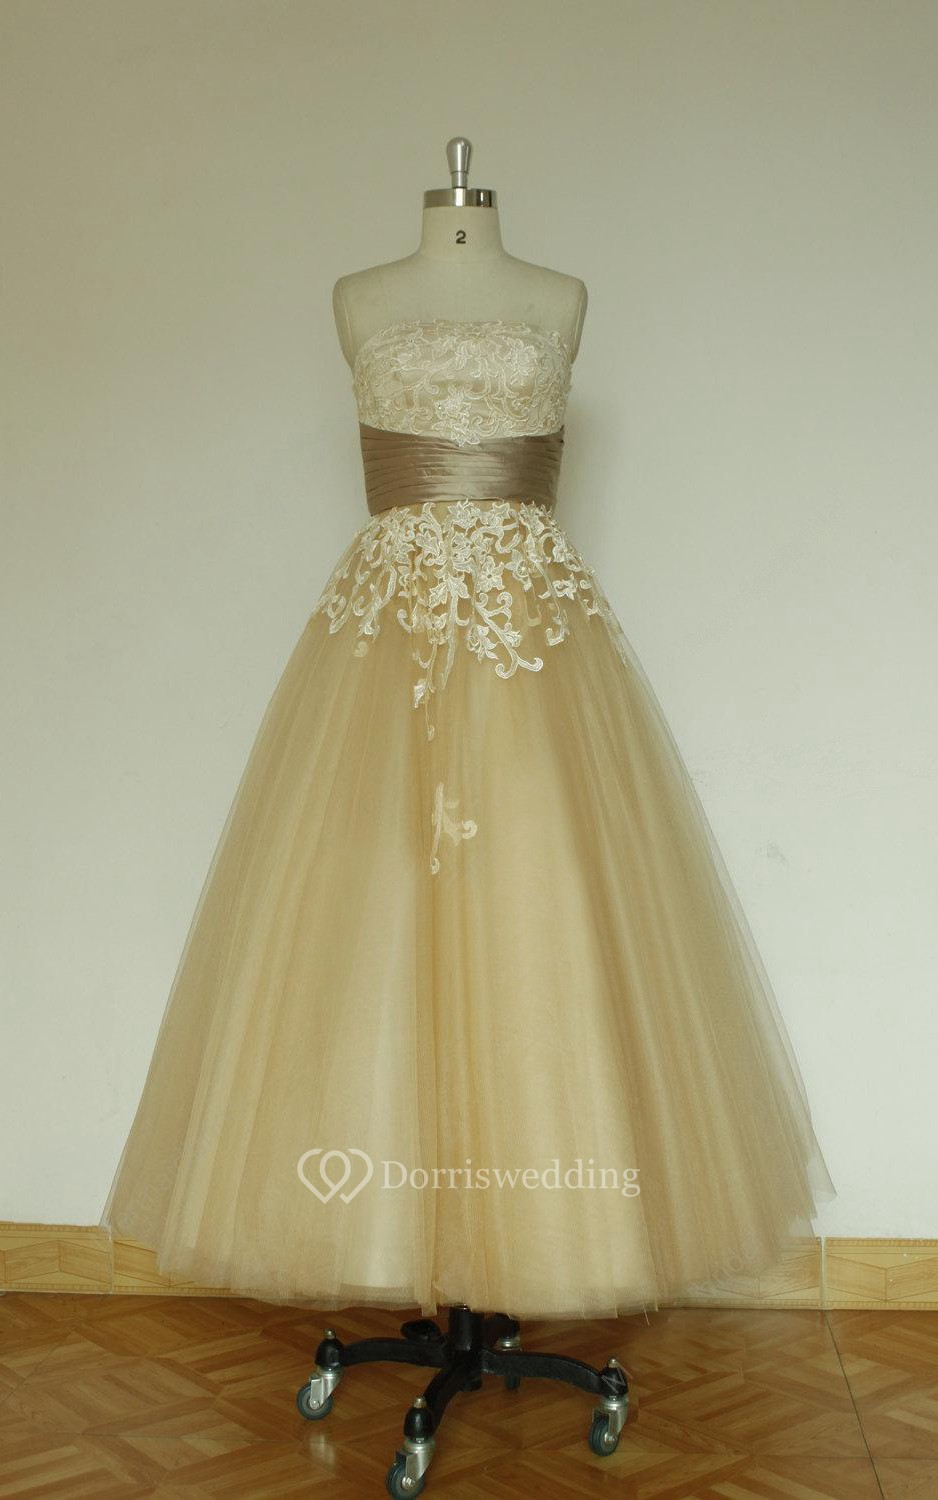 Tulle a line strapless dress with lace bodice and cinched for Cinched waist wedding dress